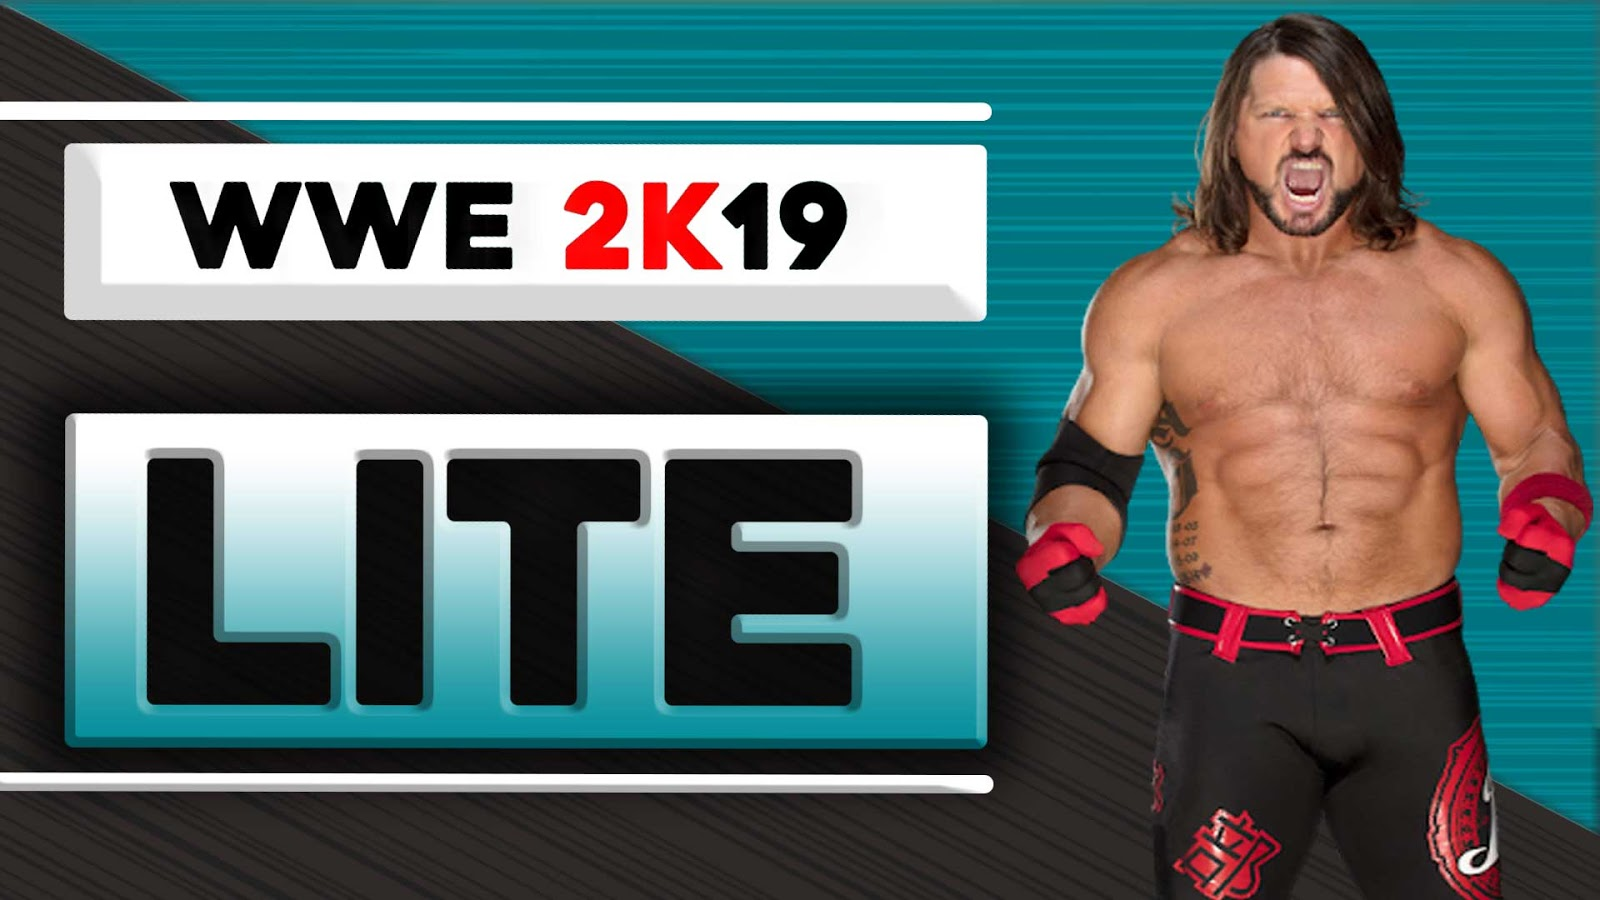 wwe 2k19 ppsspp iso download